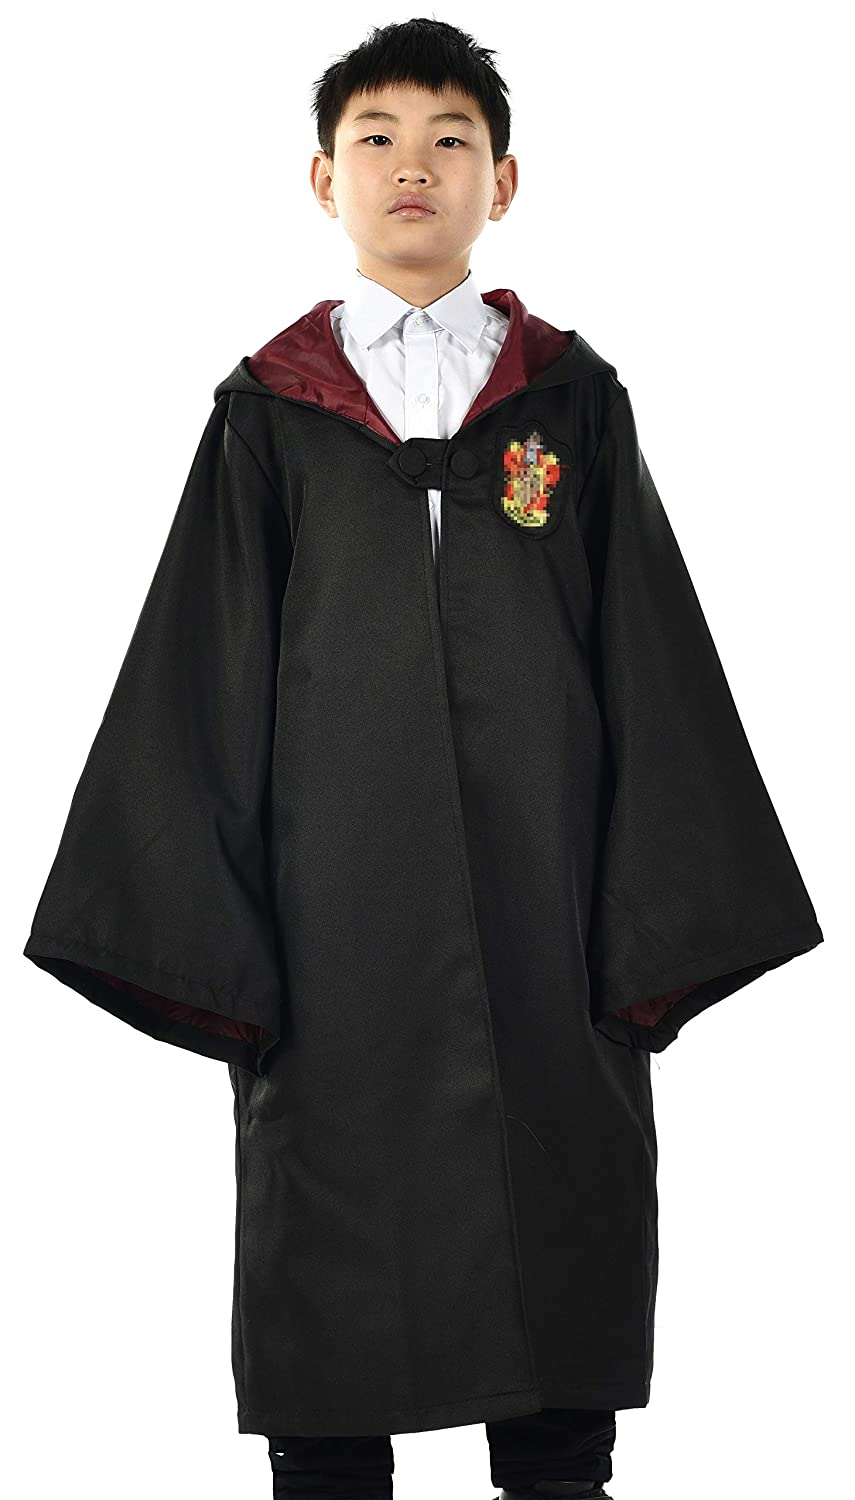 Miliano Embroidered Hooded Cloak Robe Cosplay Costume Kids//Audlt Size